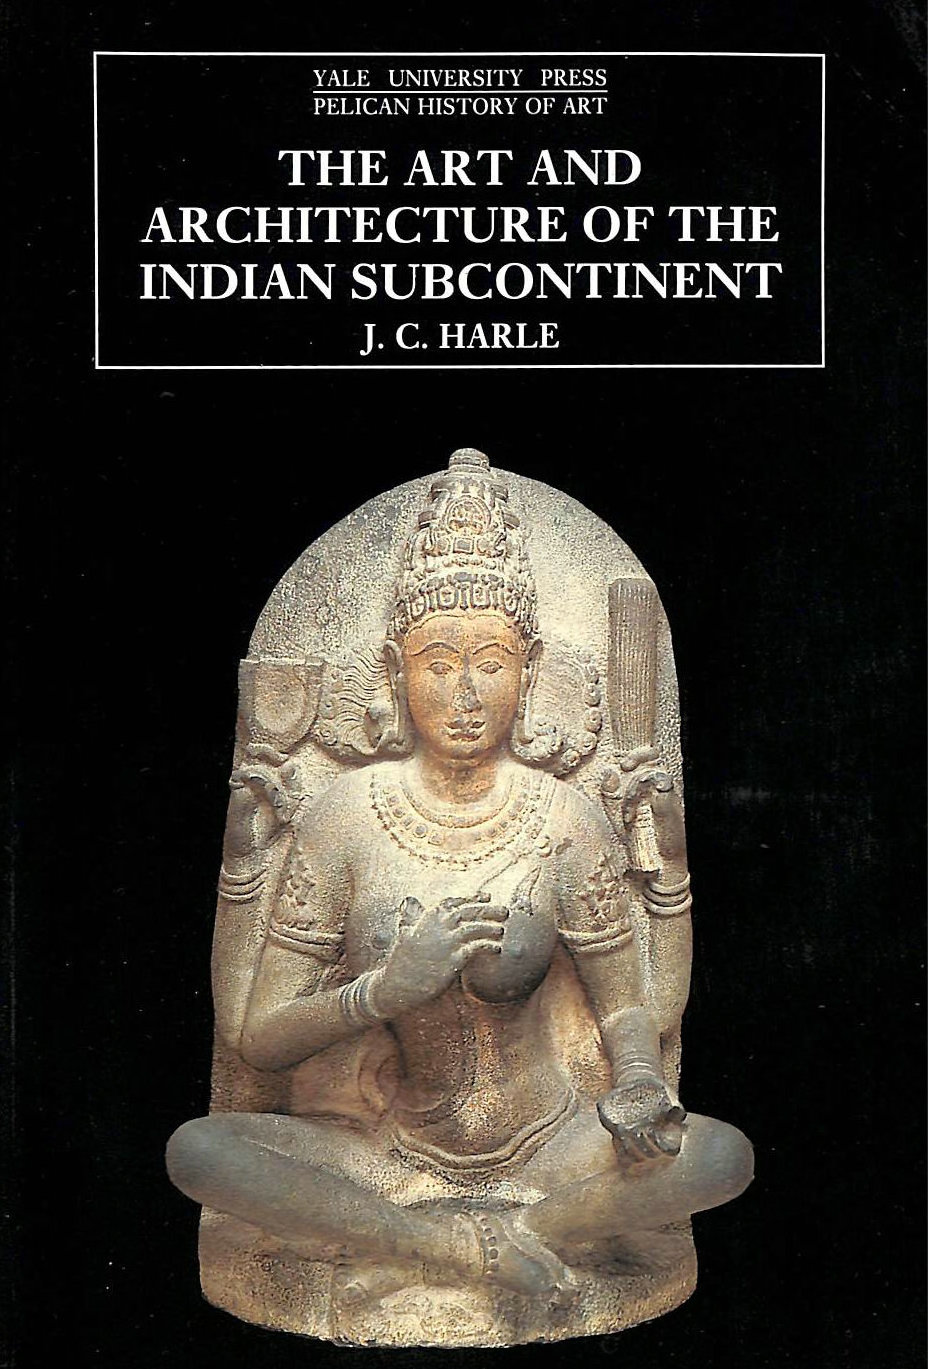 Image for The Art and Architecture of the Indian Subcontinent (The Yale University Press Pelican History of Art Series)